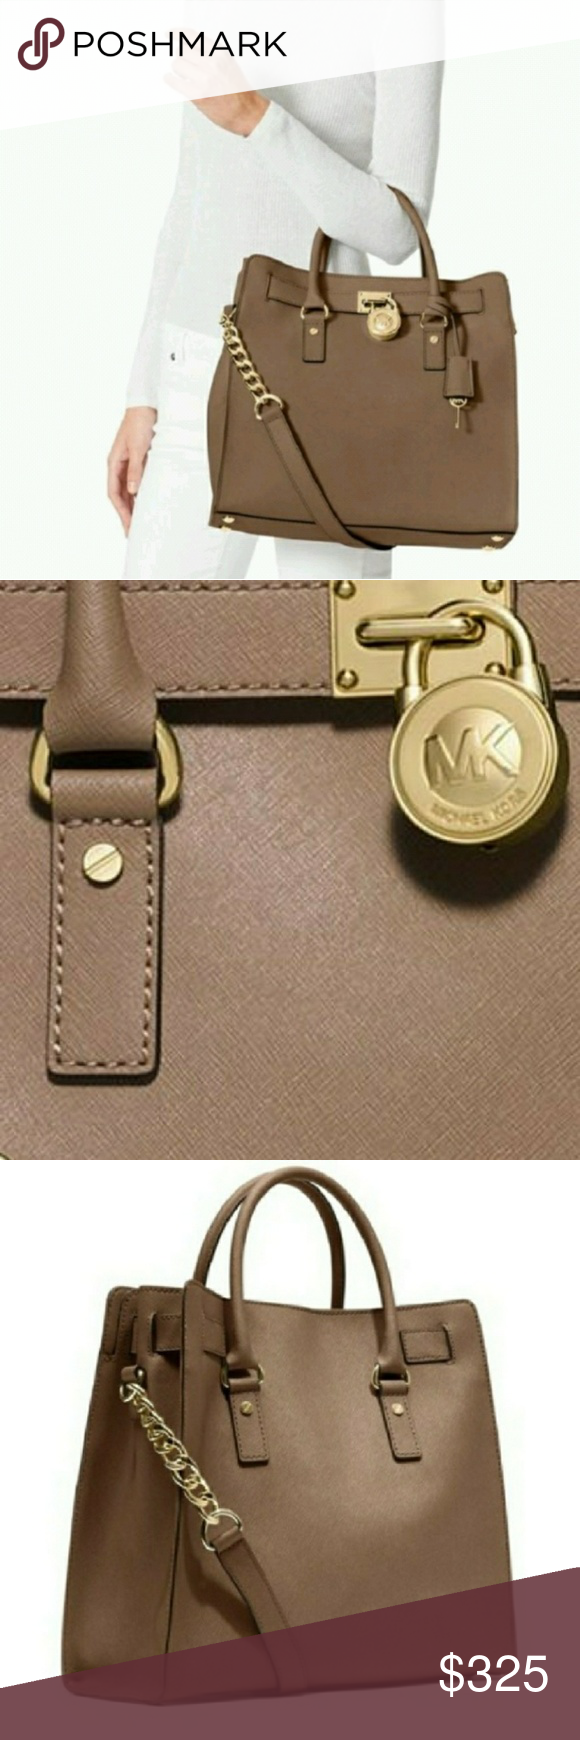 52829e25a136 🆕⭐Leather Michael Kors Large Hamilton bag Brand New with tags from Macy s.  Color